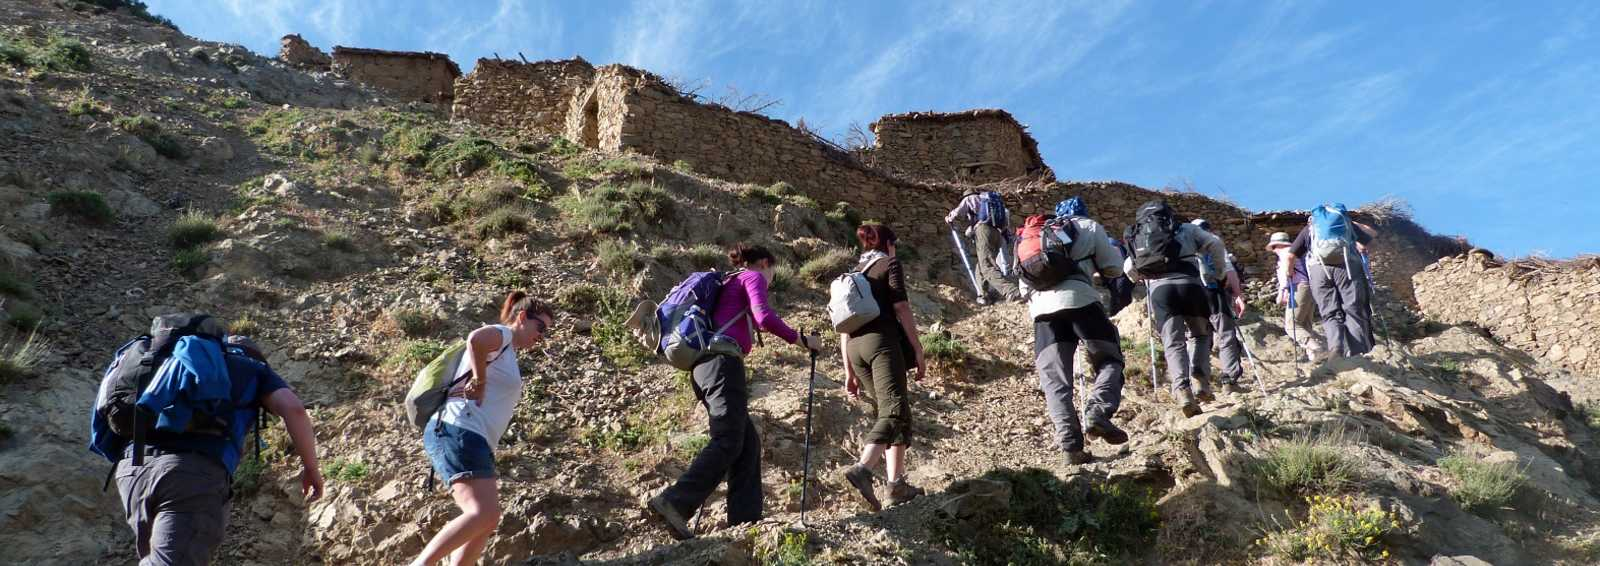 Group approaching Mt Toubkal summit, Morocco